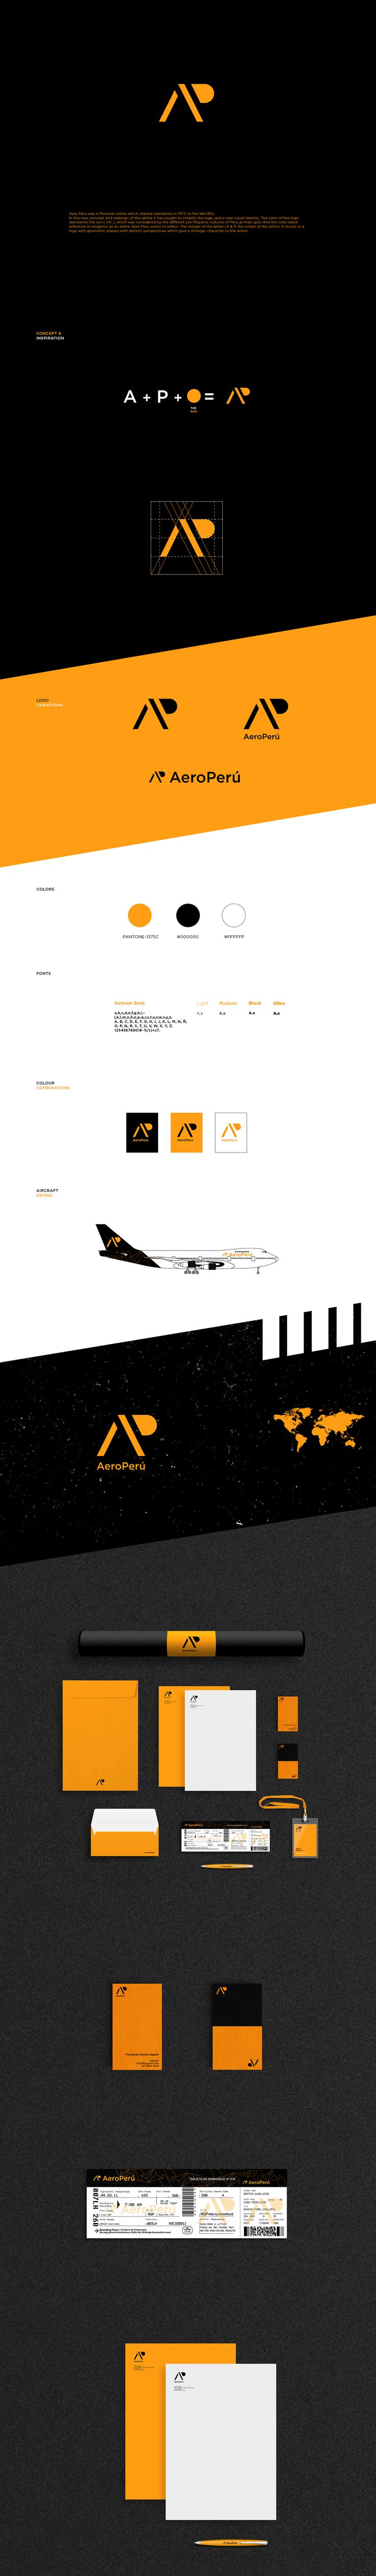 AeroPerú- Branding on Behance Airline branding design inspiration